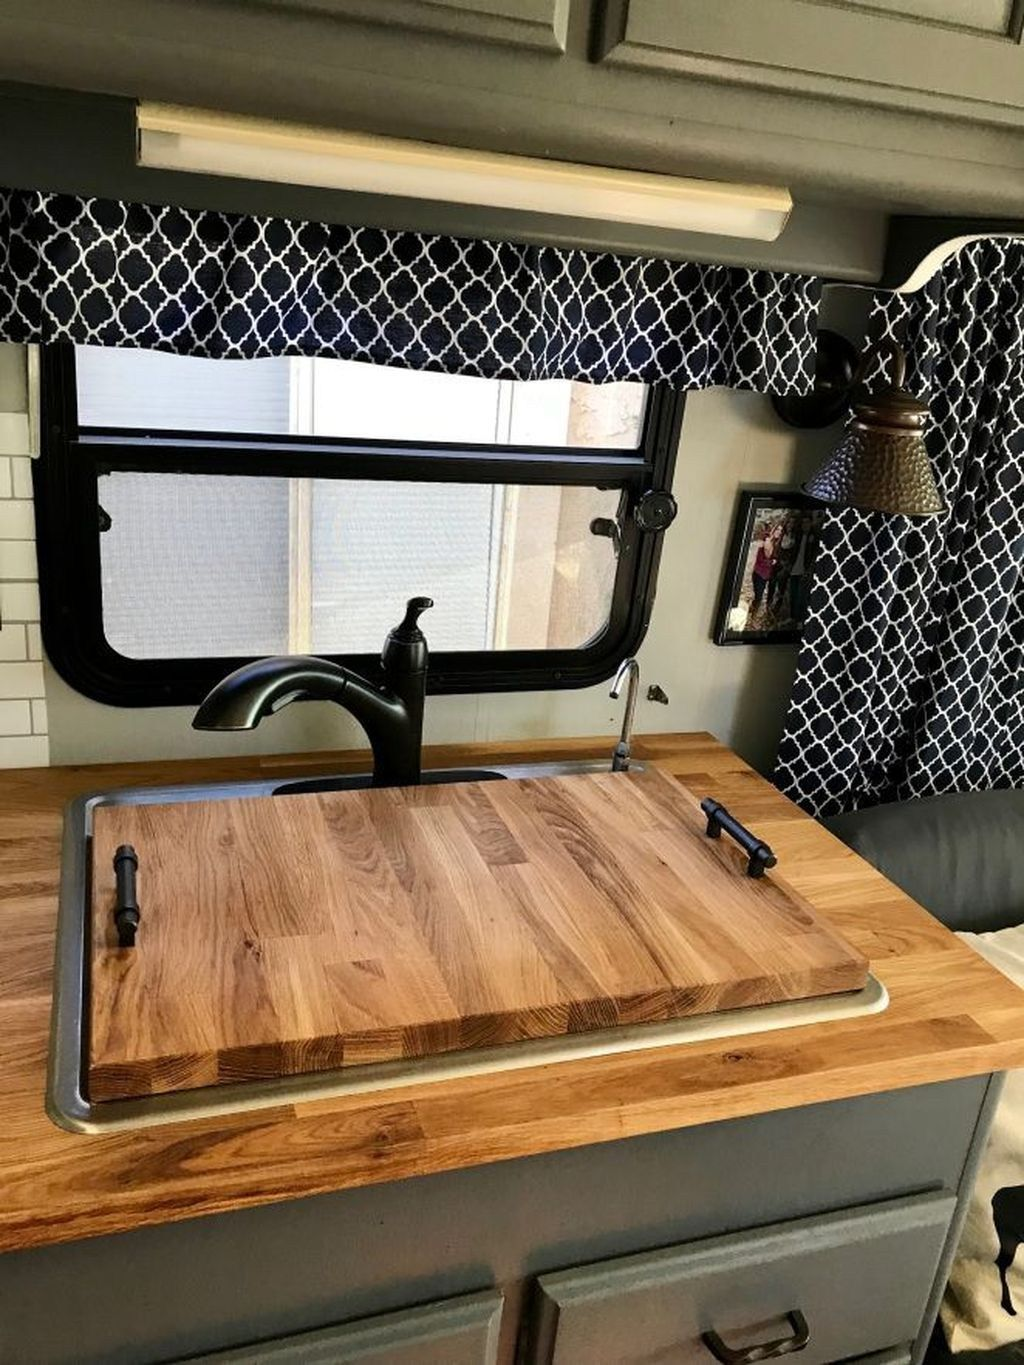 Briliant Ideas For Rv Hacks Table Remodel On A Budget 48